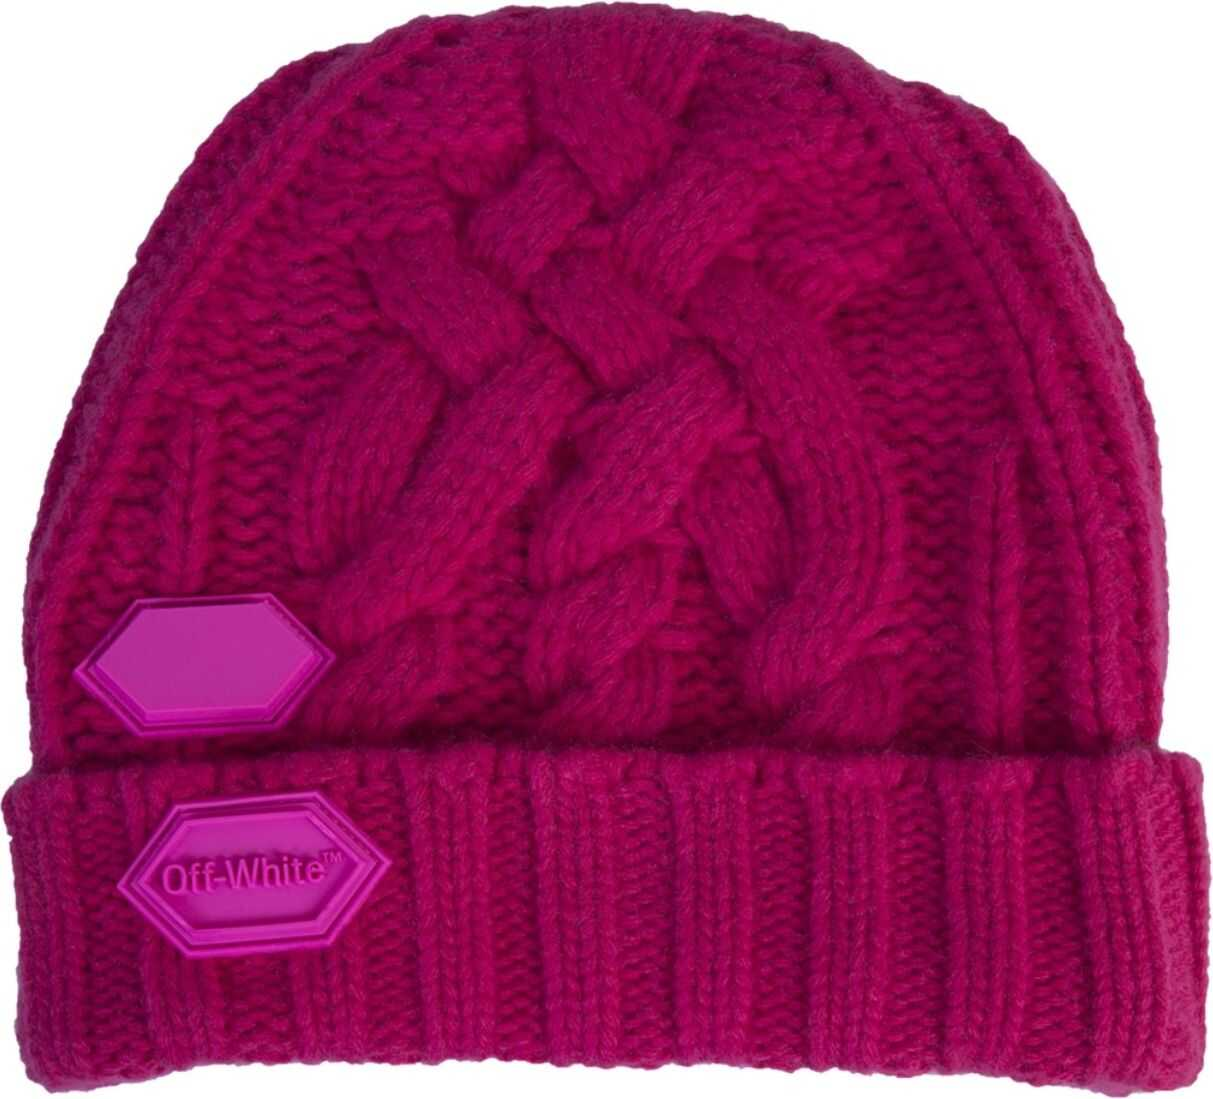 Off-White Knitted Hat FUCHSIA